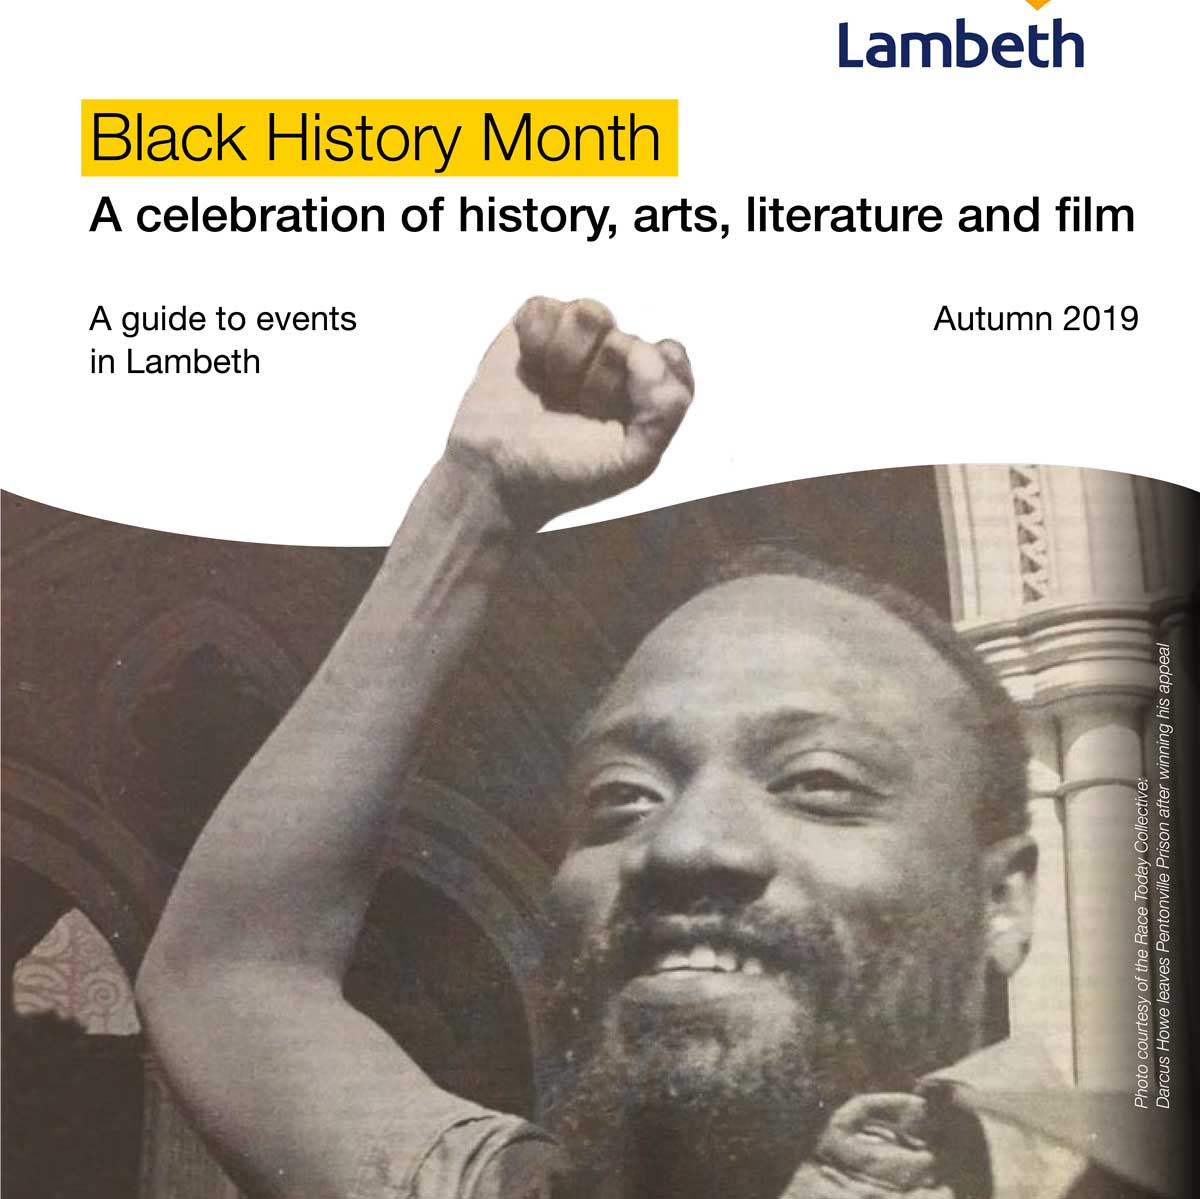 cover black history month brochure )October 2019